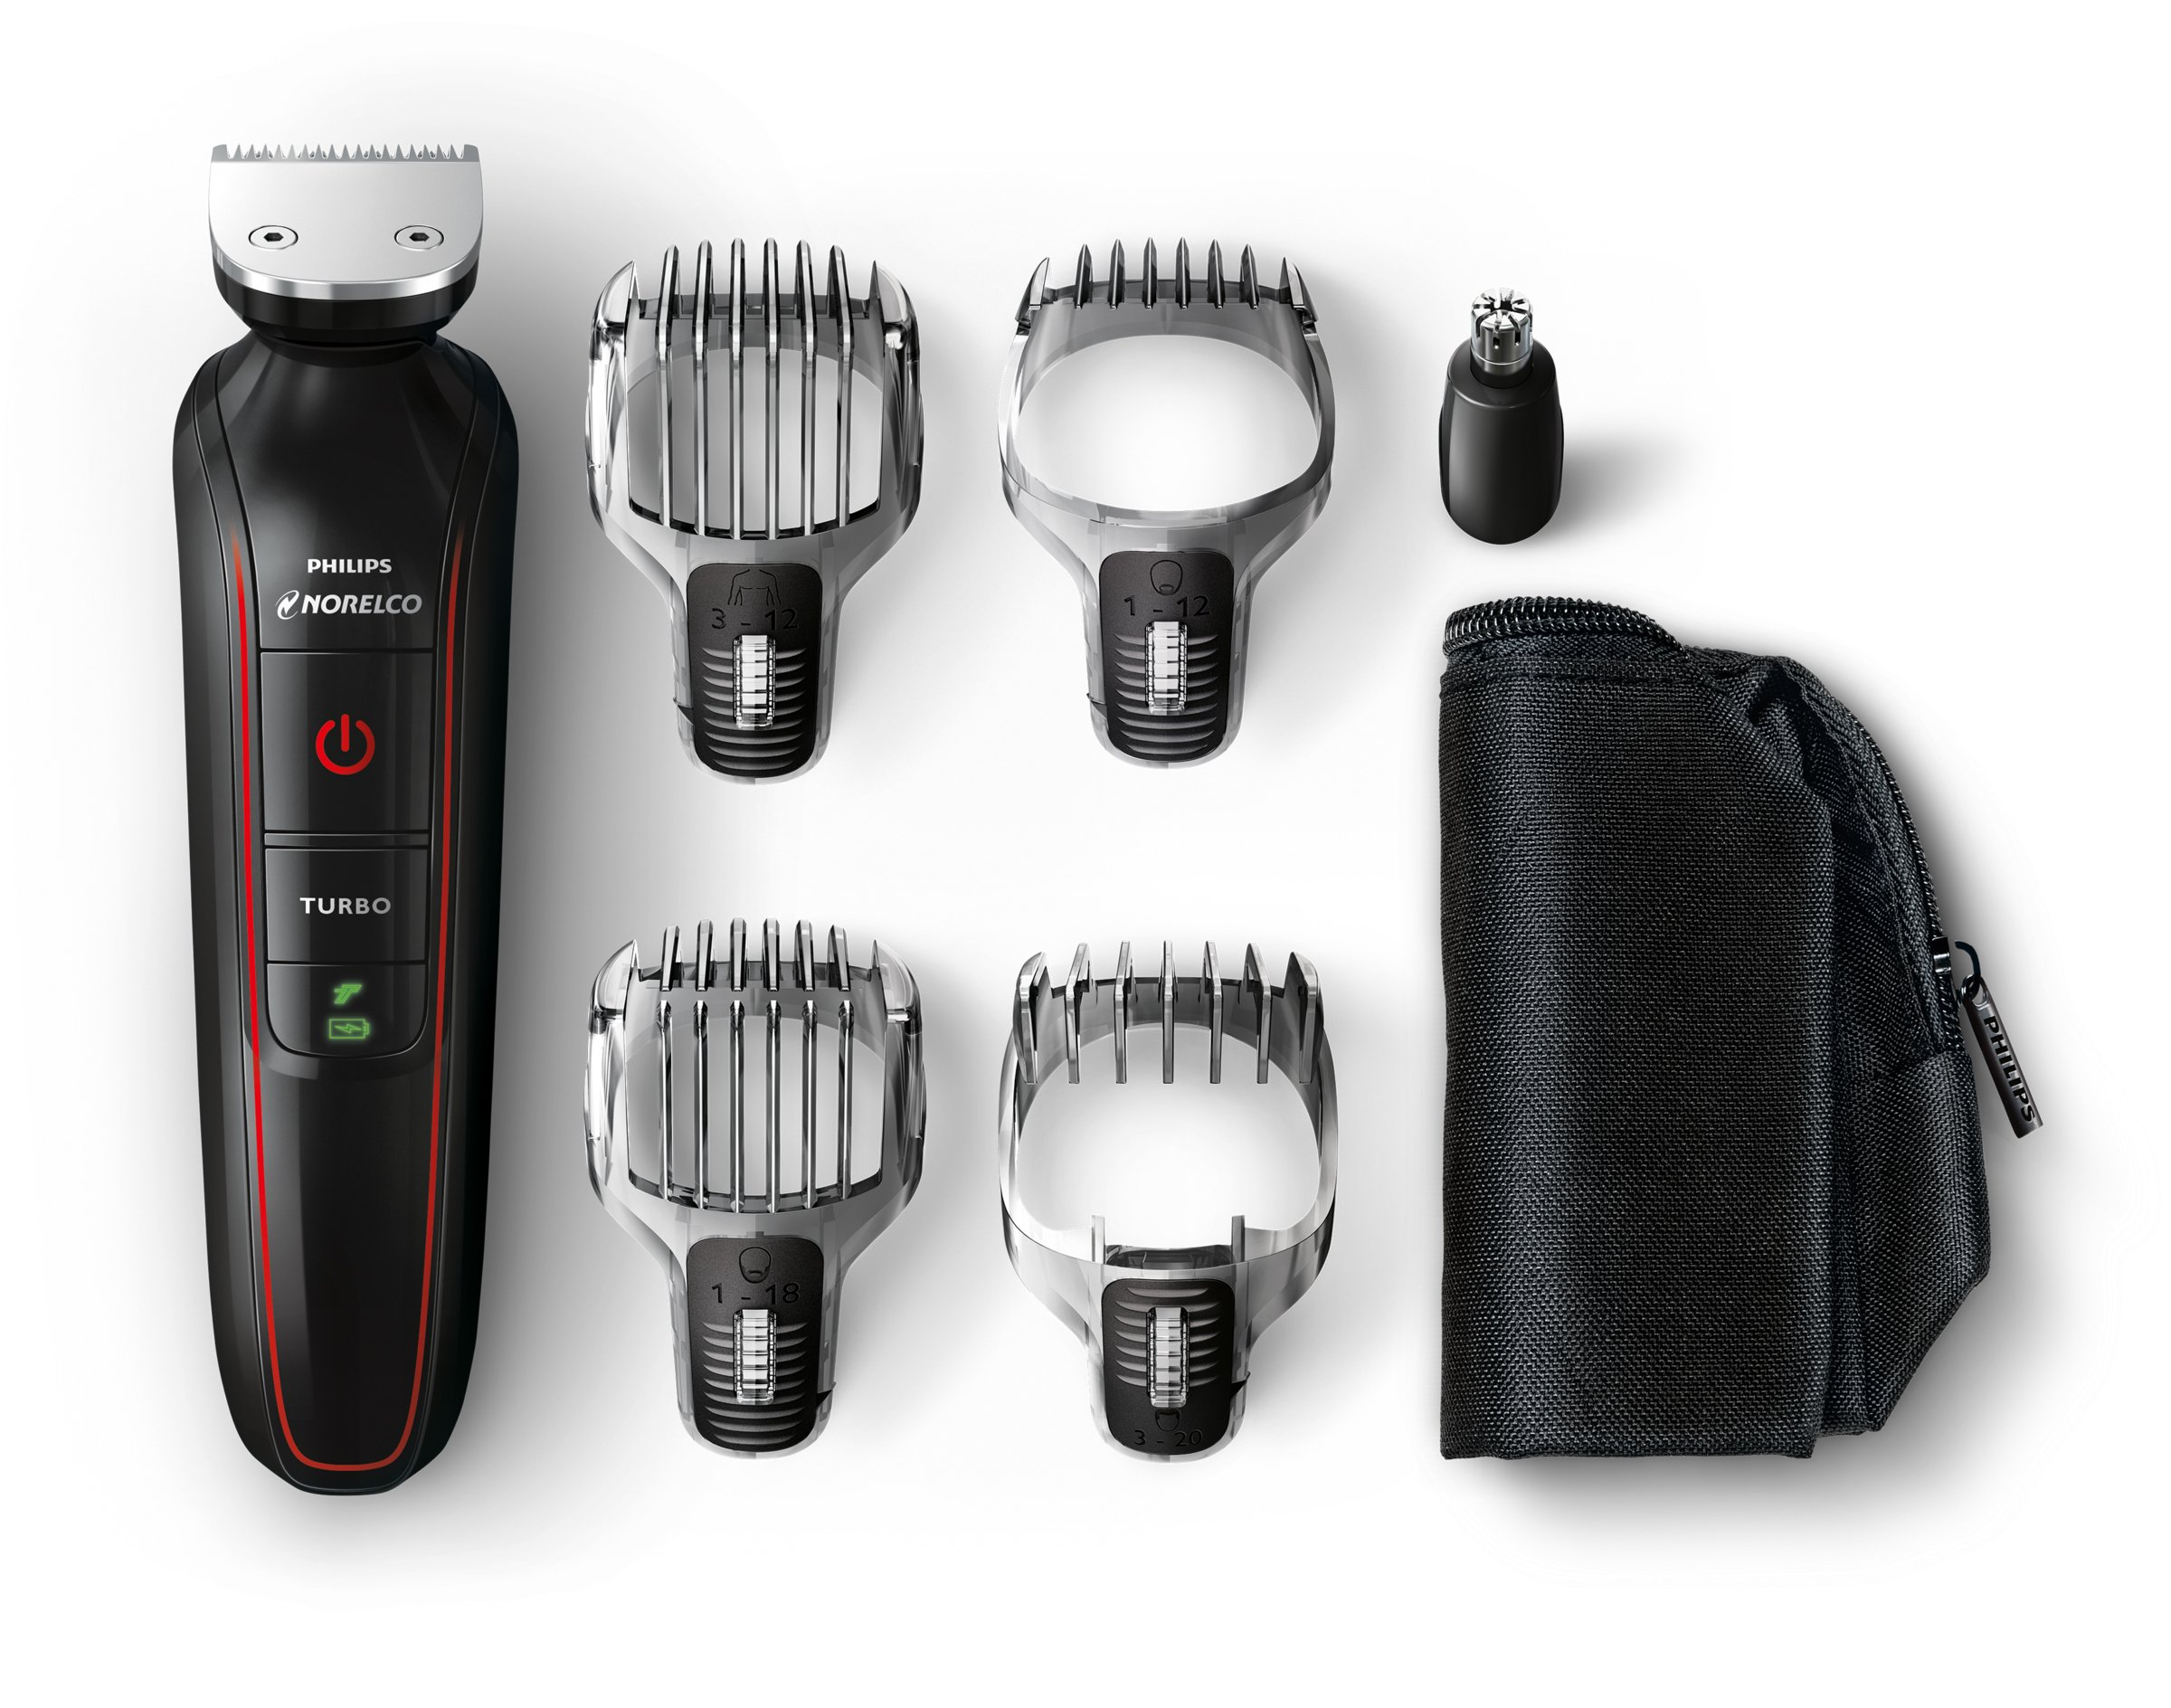 Norelco QG3372/41 Philips Multigroom Beard, Stubble, Hair, Nose and Body Trimmer by Philips Norelco